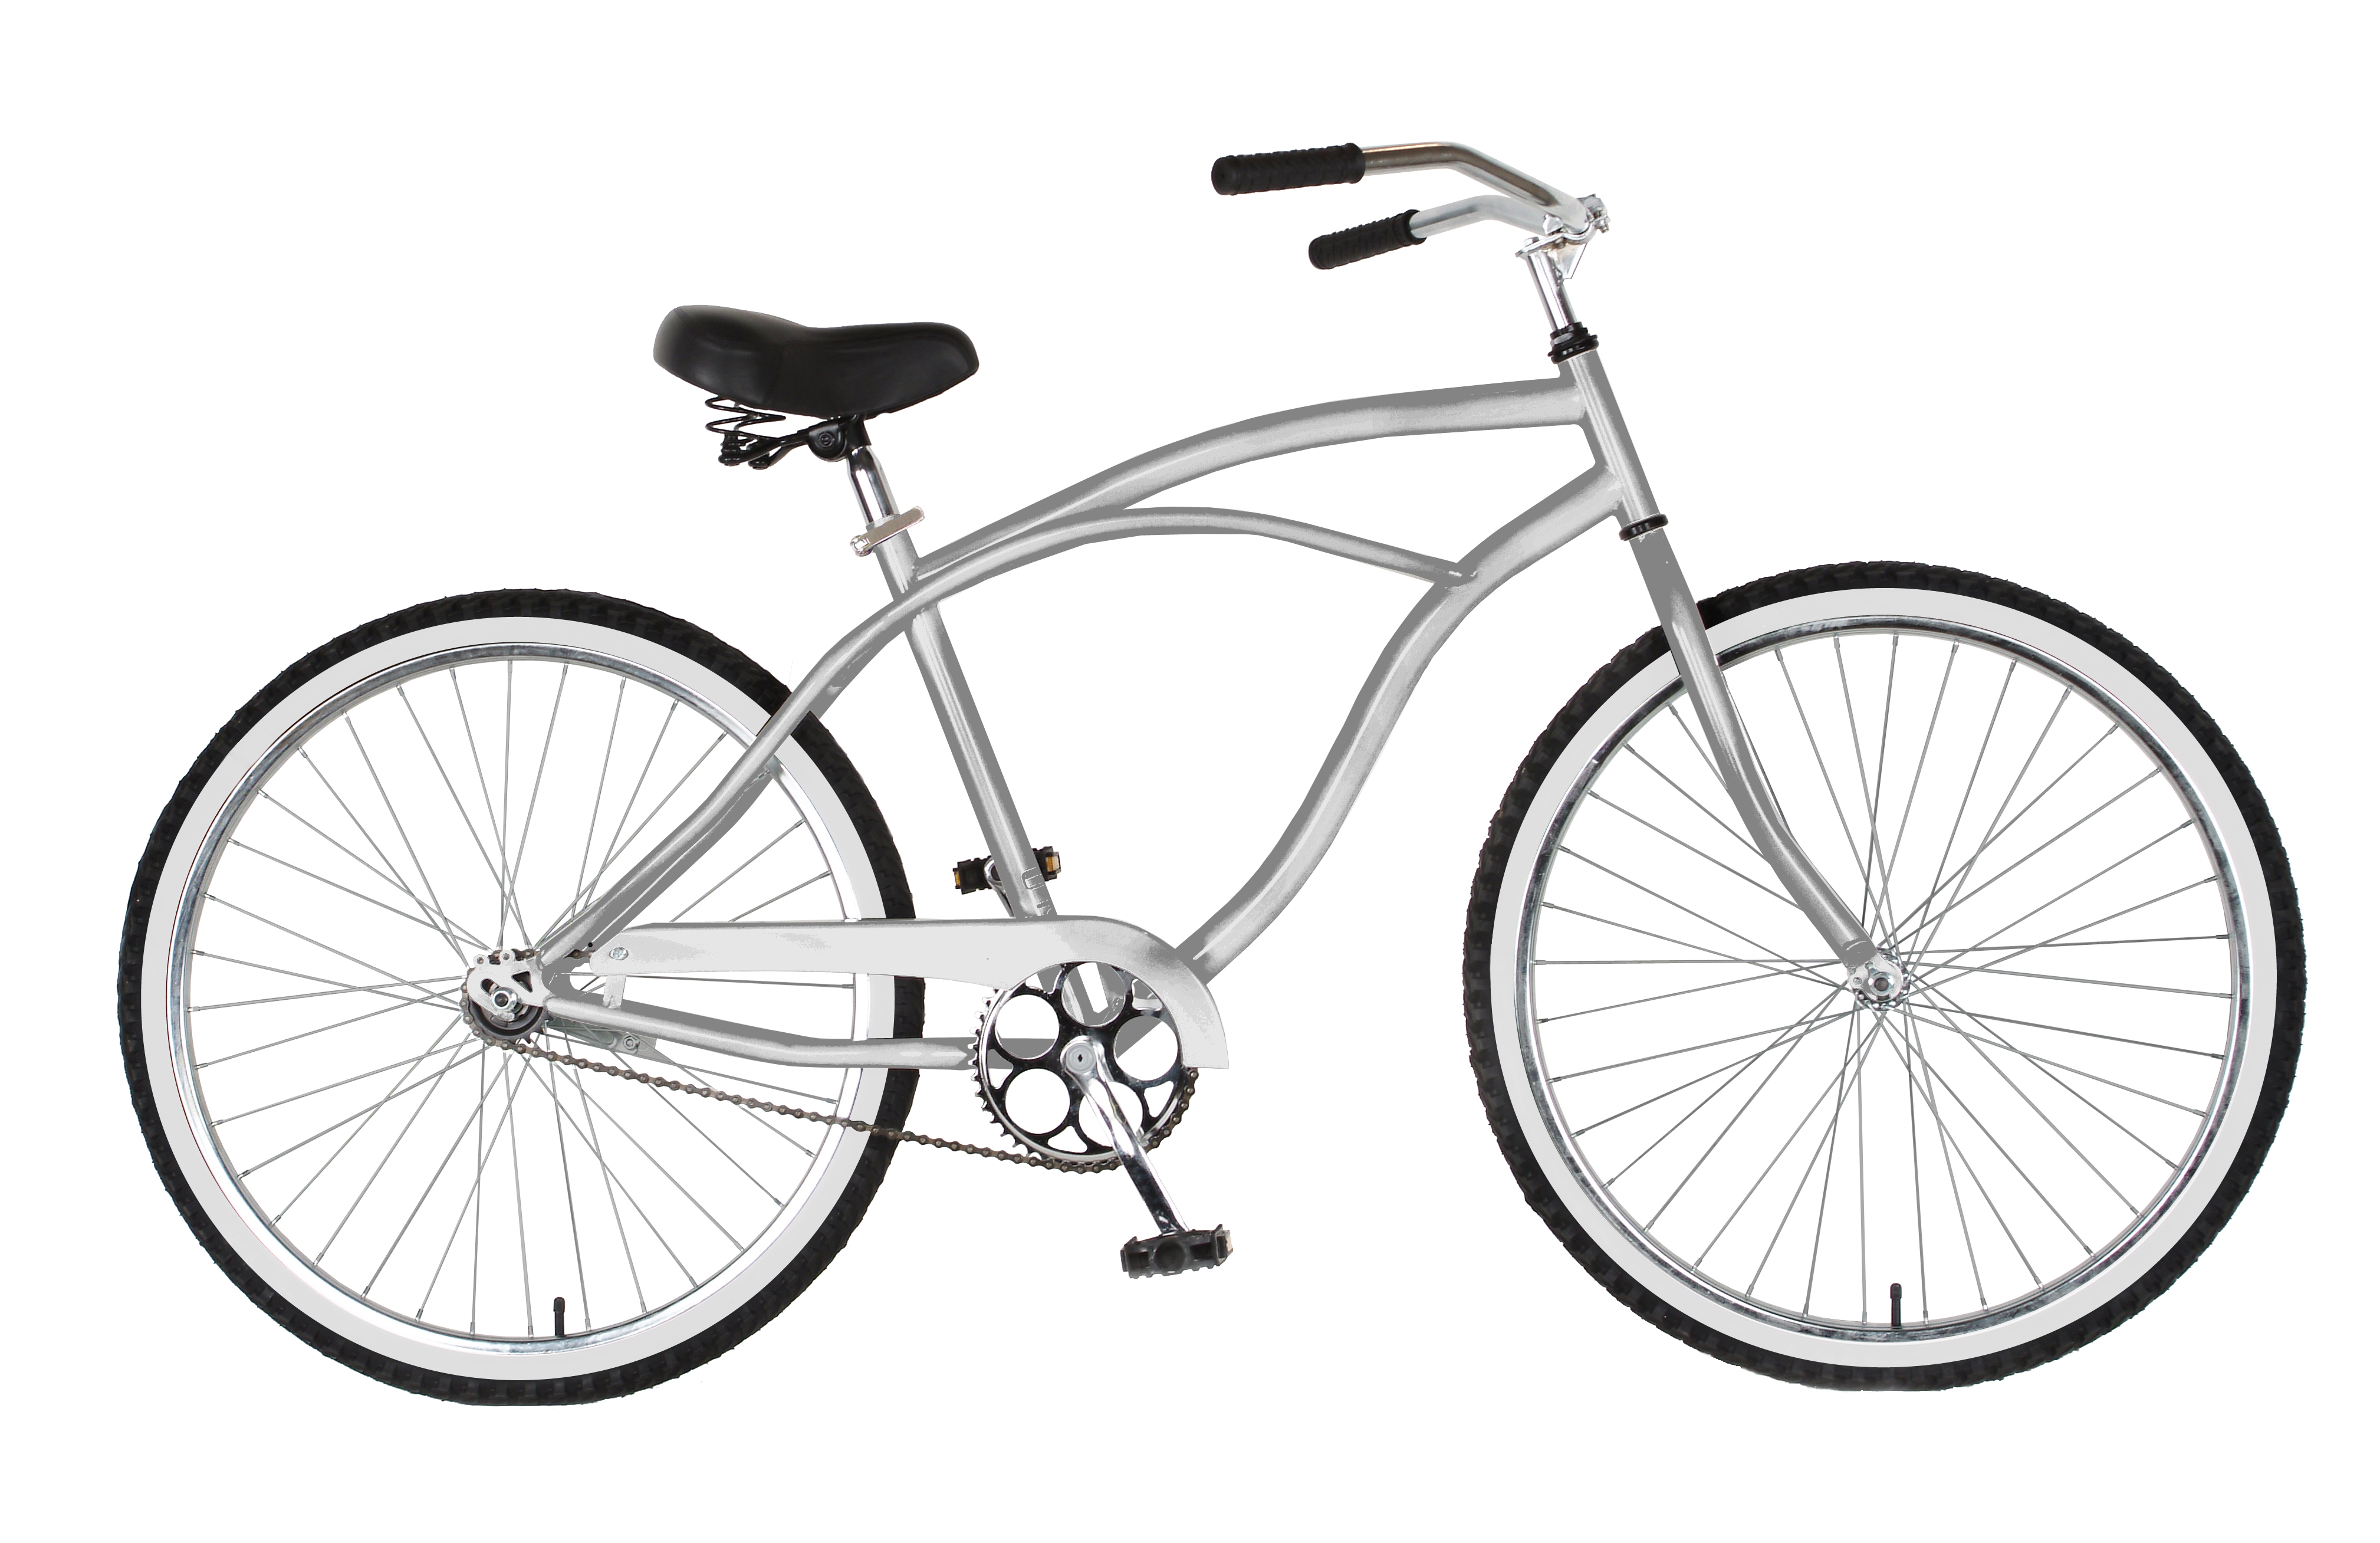 Cycle Force Group Cycle Force 26 inch Mens Cruiser Bike, Silver